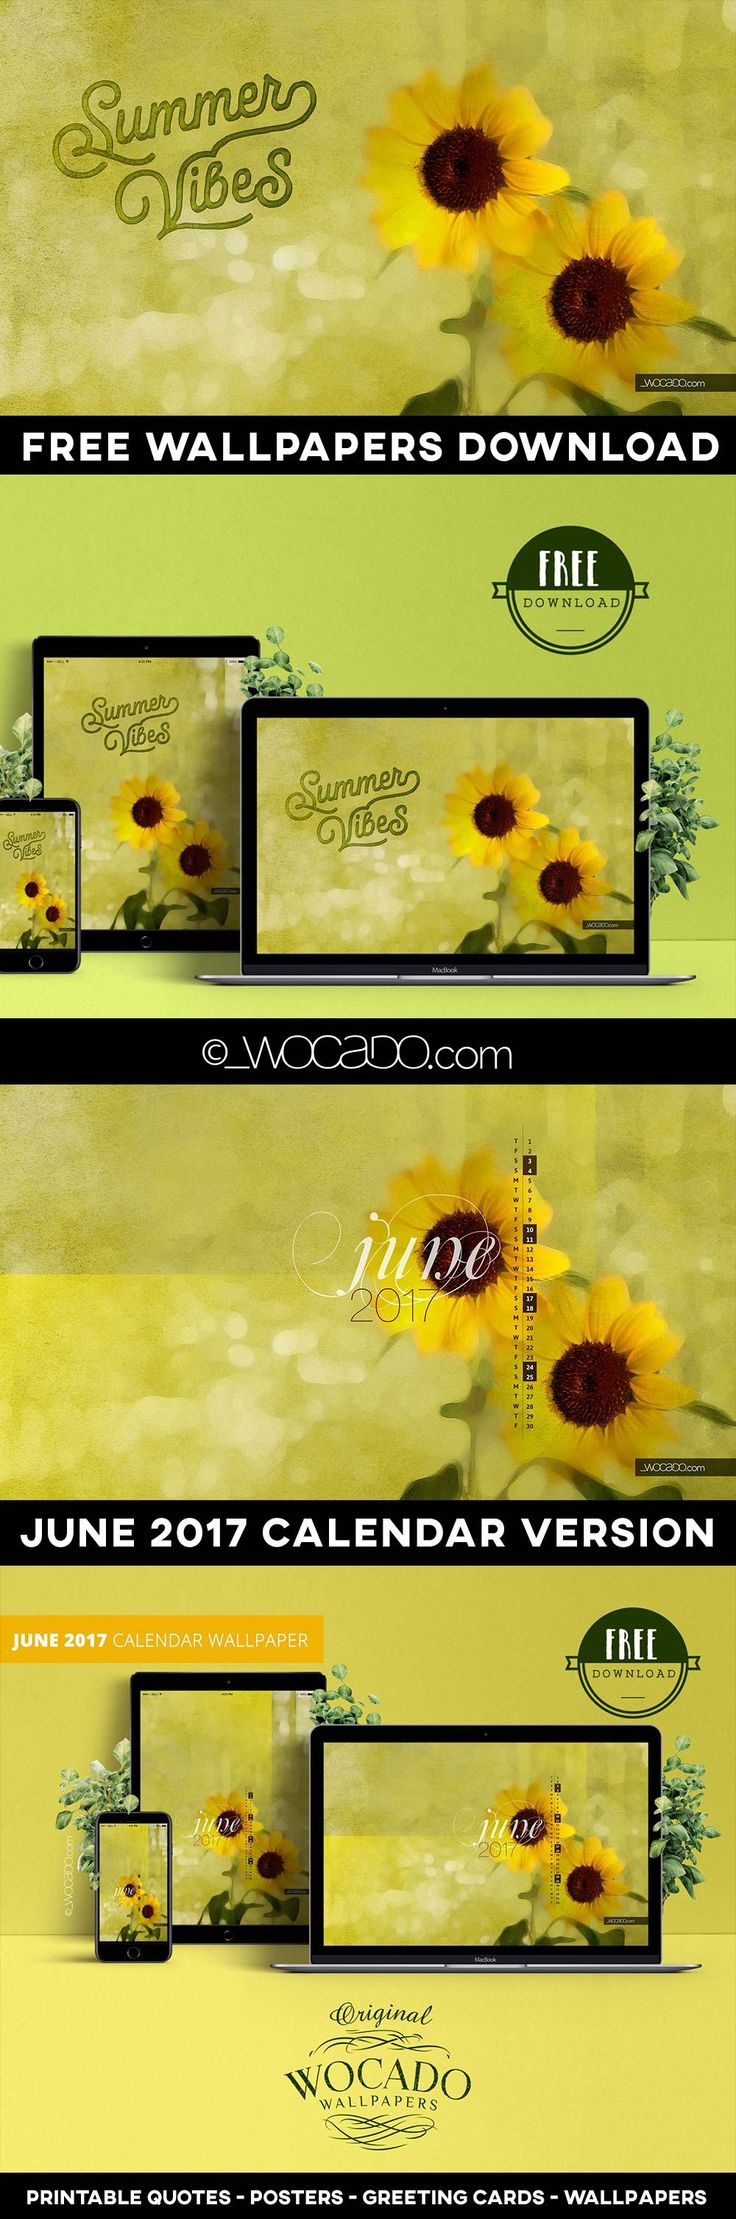 Free Download by WOCADO Available in various resolutions. Get This Beautiful 2017 June CalendarWallPaper for your Device. Get it now There is also anAll-Year Wallpaper Version without Calendar with beautiful 'Summer Vibes'lettering. Get it now Do You Like These Wallpapers? Let Me Know Your Thoughts in the Comments Below! Do You Have a Story to…